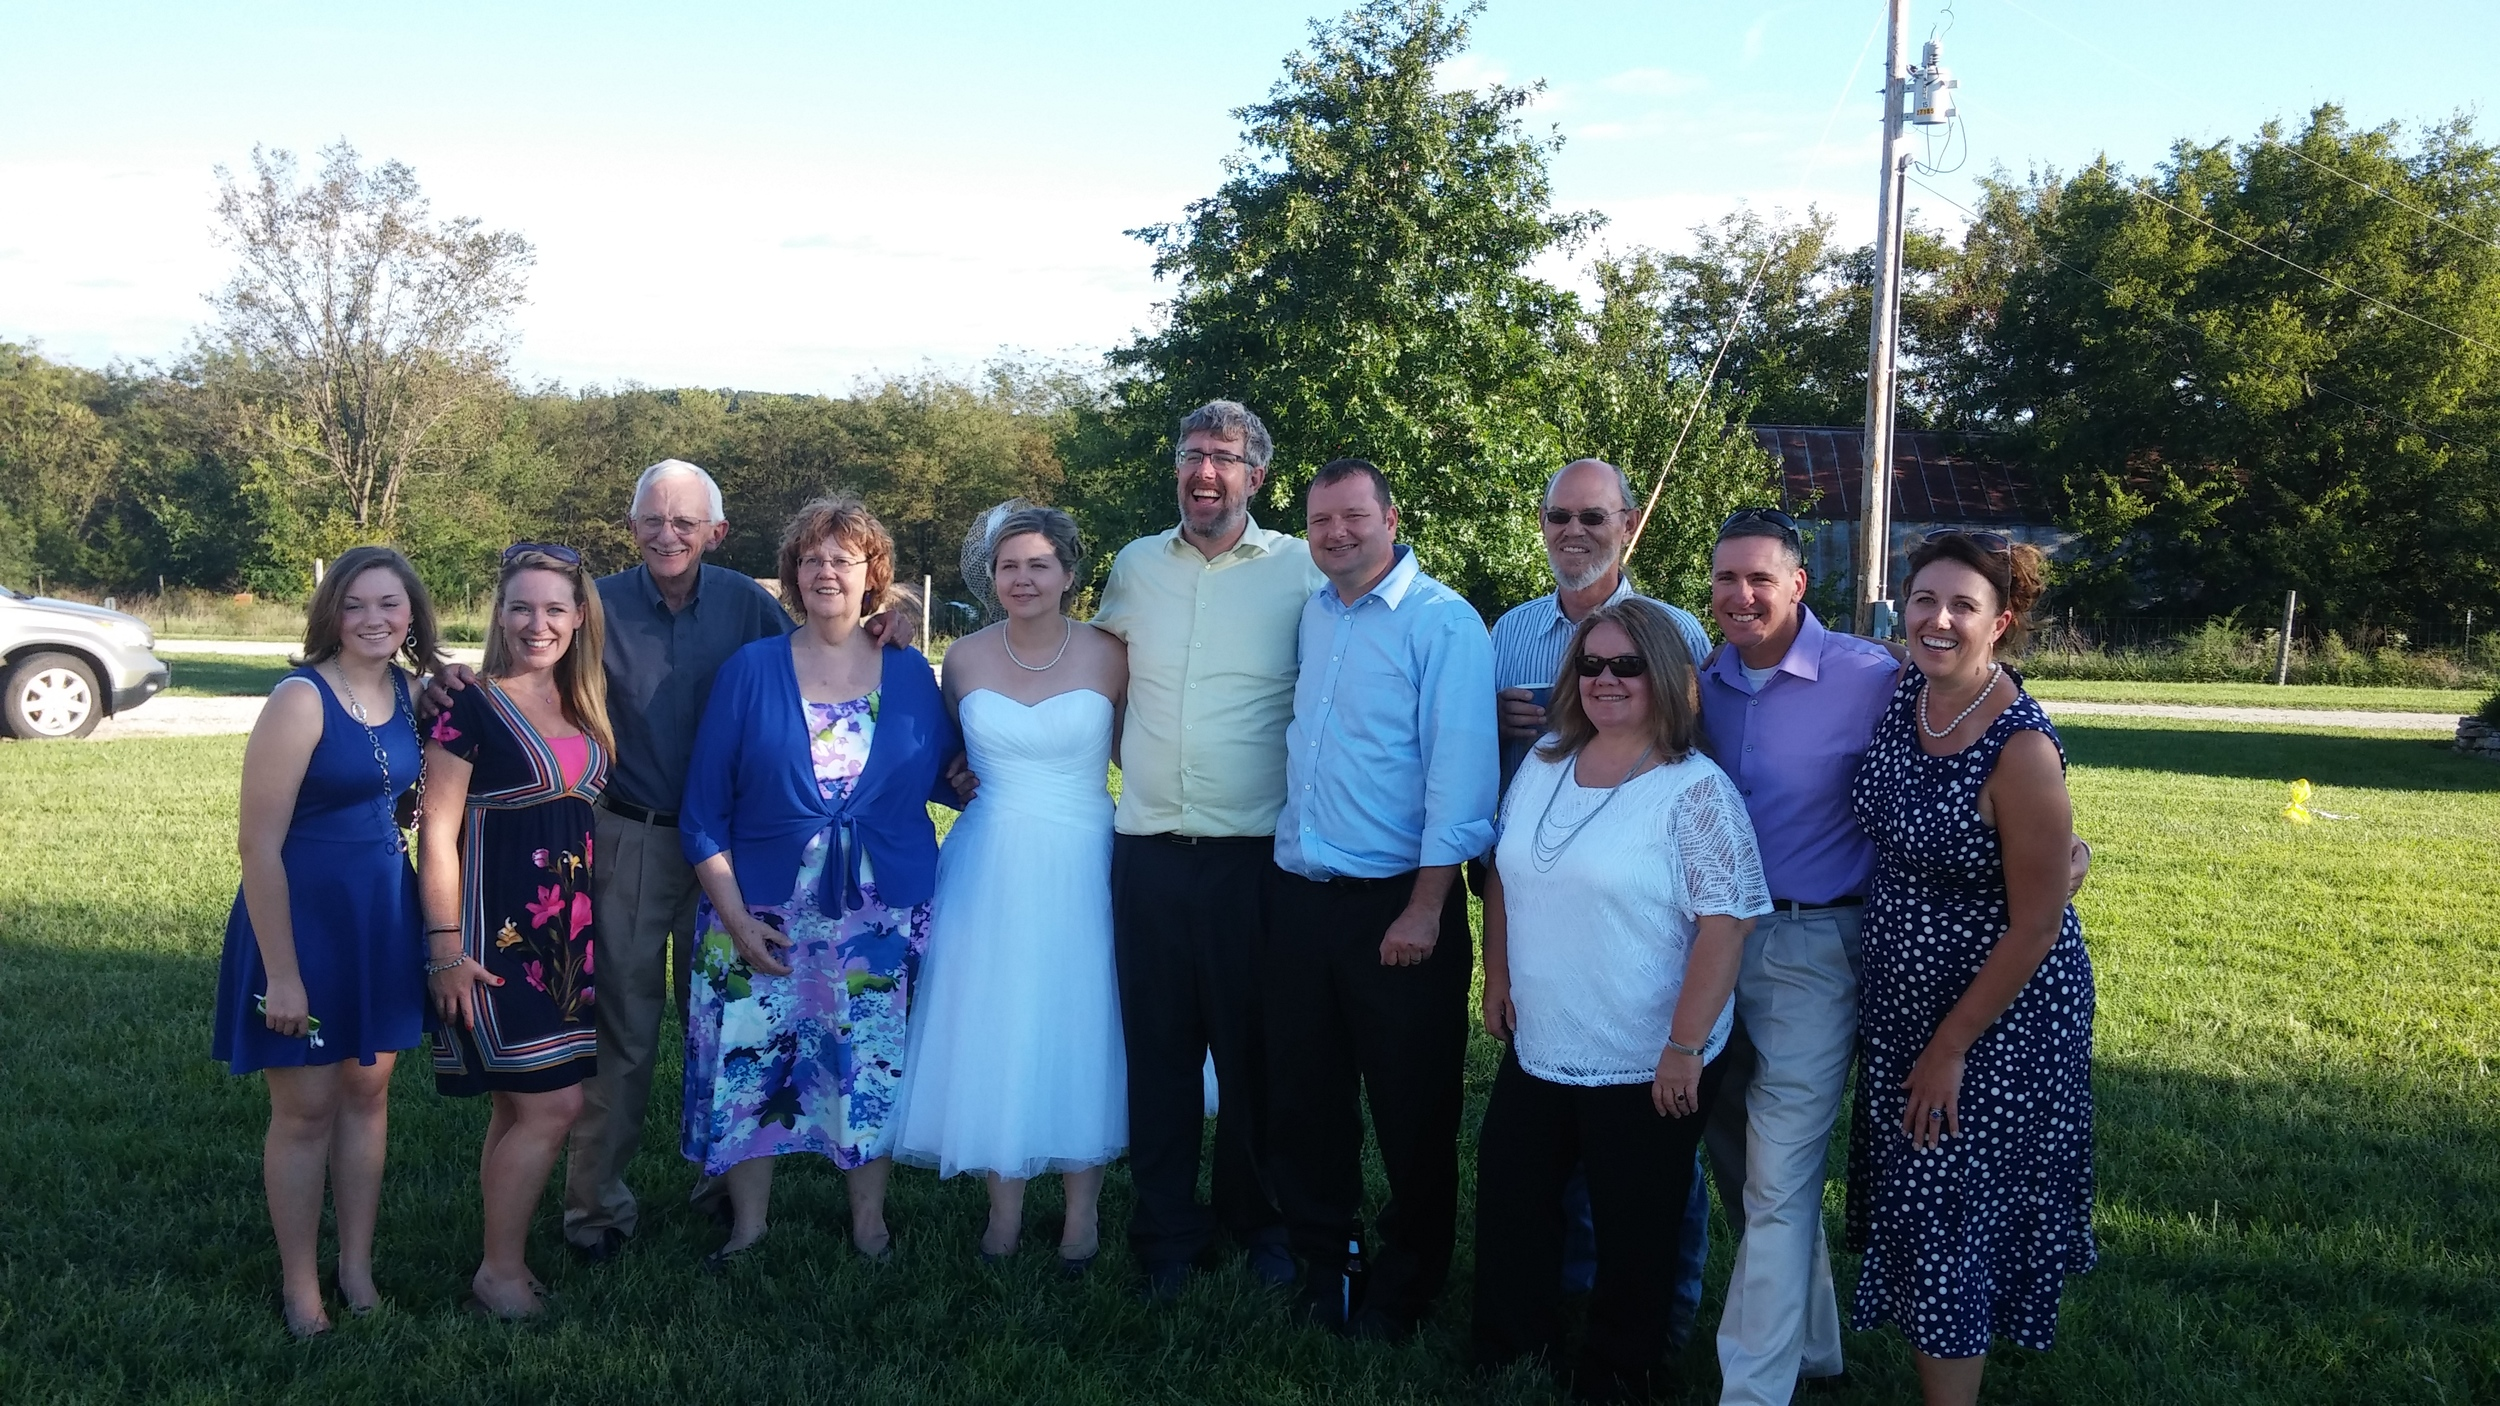 Lots of family came out to celebrate Patrick and Elizabeth's wedding day!